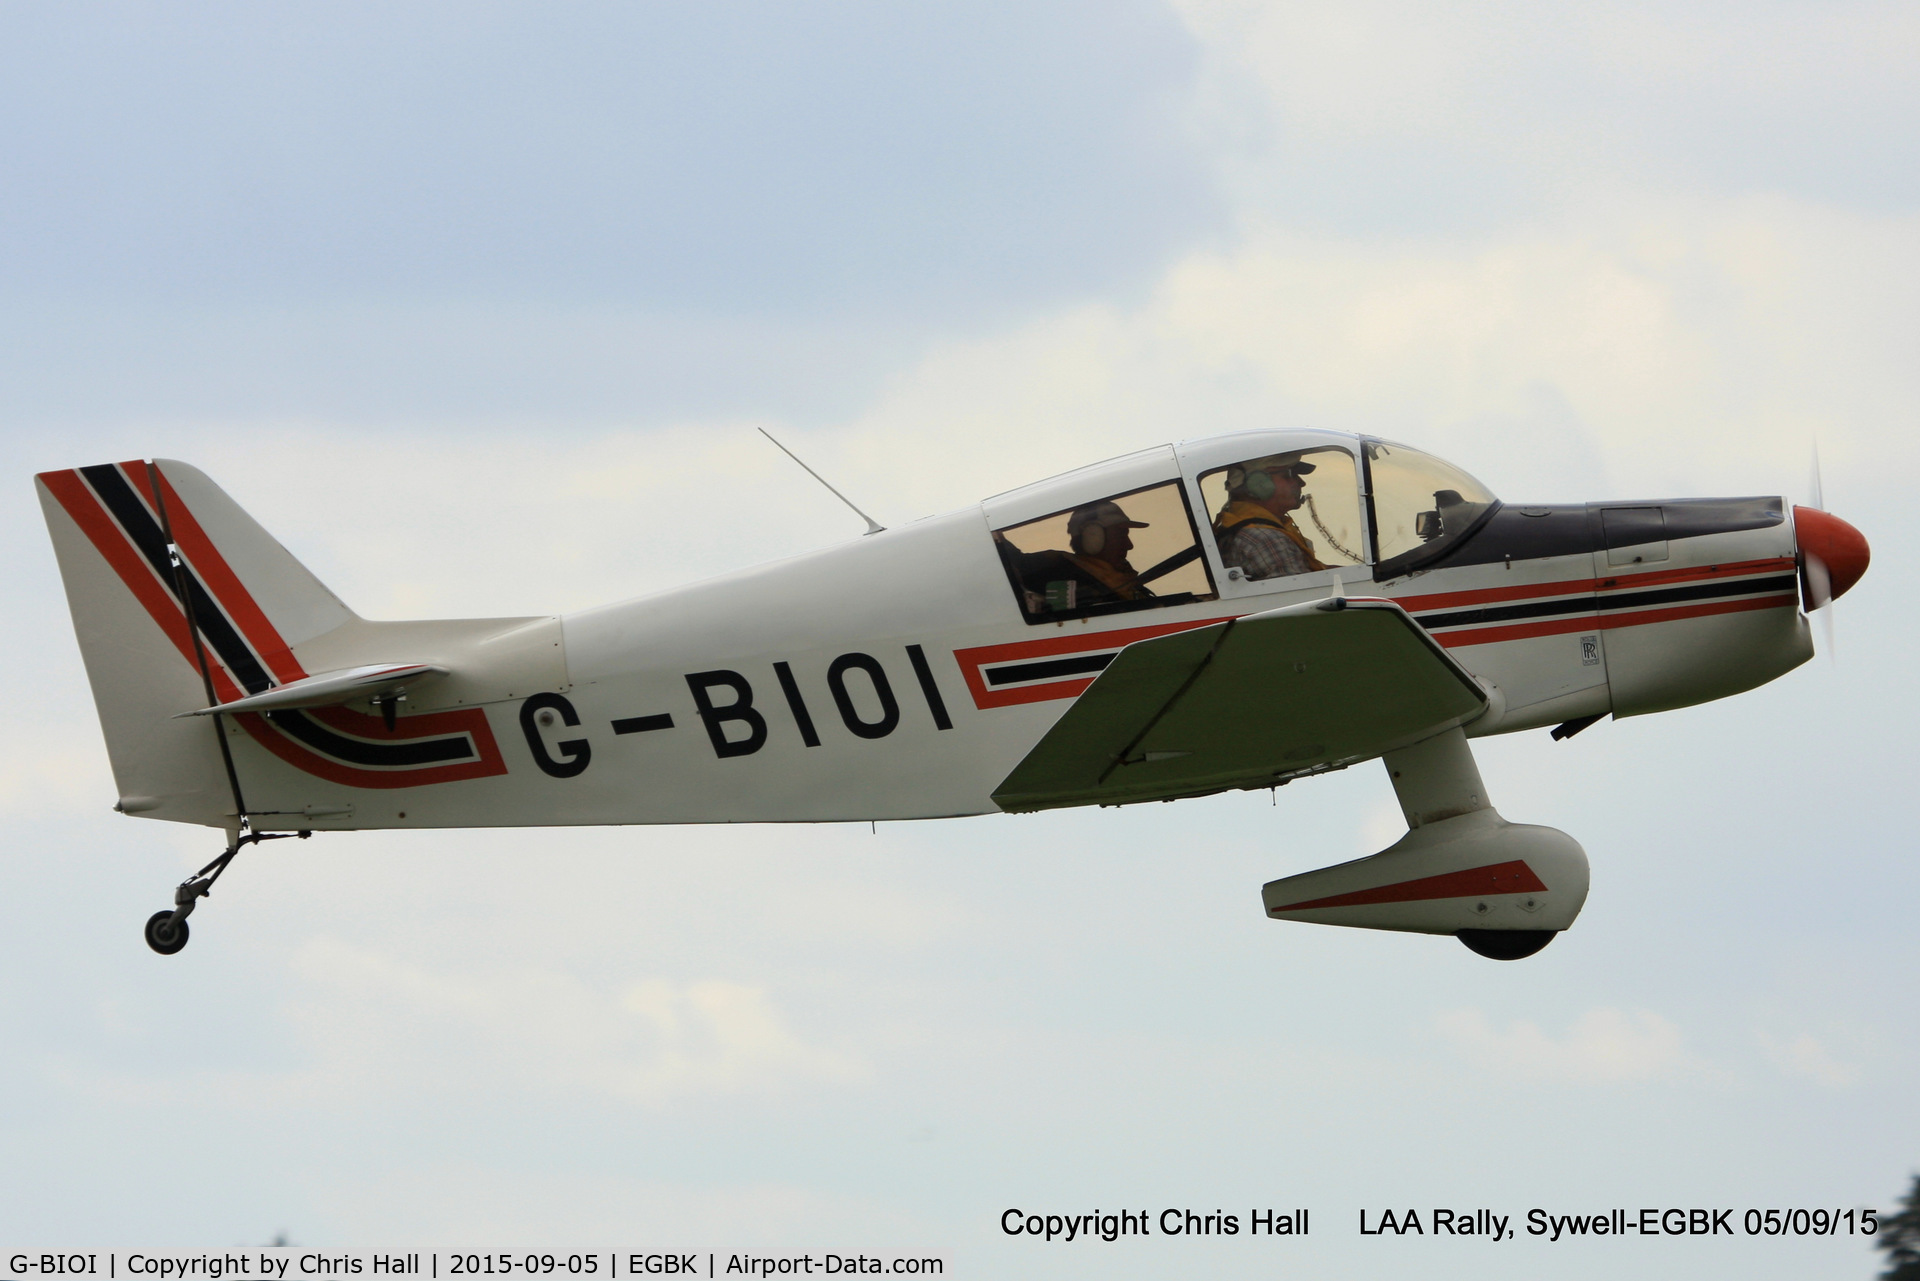 G-BIOI, 1964 SAN Jodel DR-1050M Excellence C/N 477, at the LAA Rally 2015, Sywell